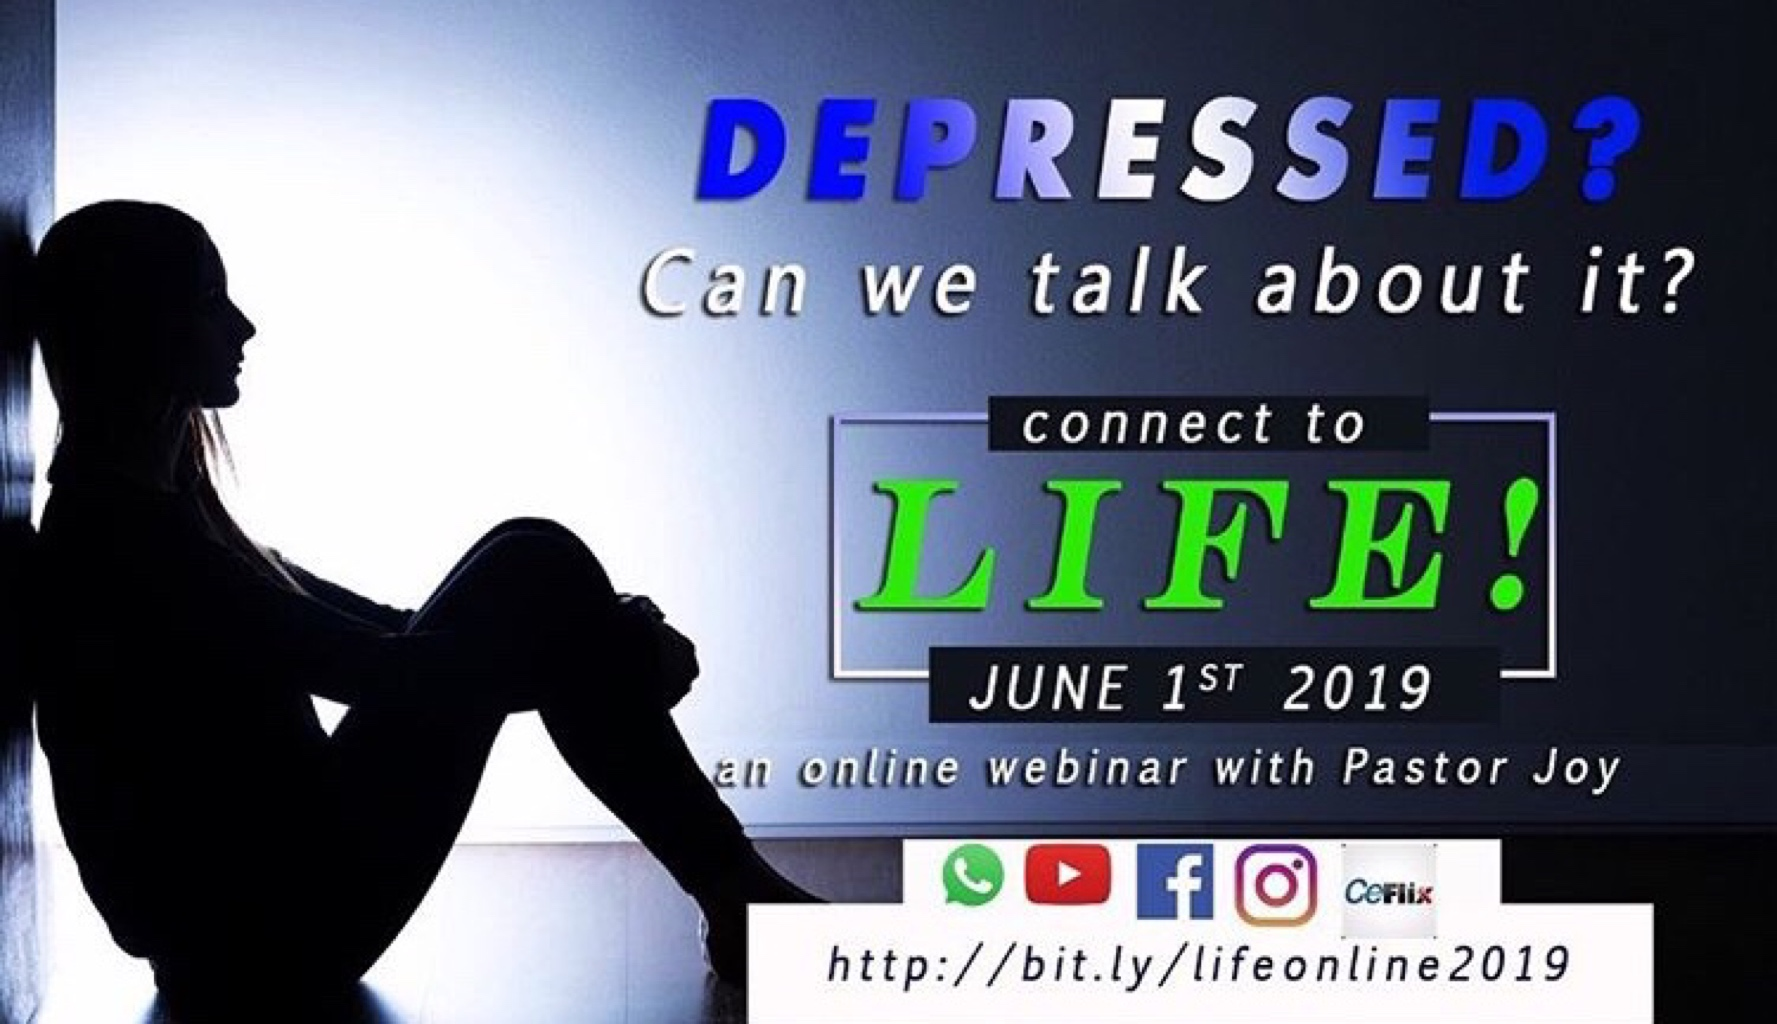 Depressed?? Join Life conference #Life#PastorJoy#